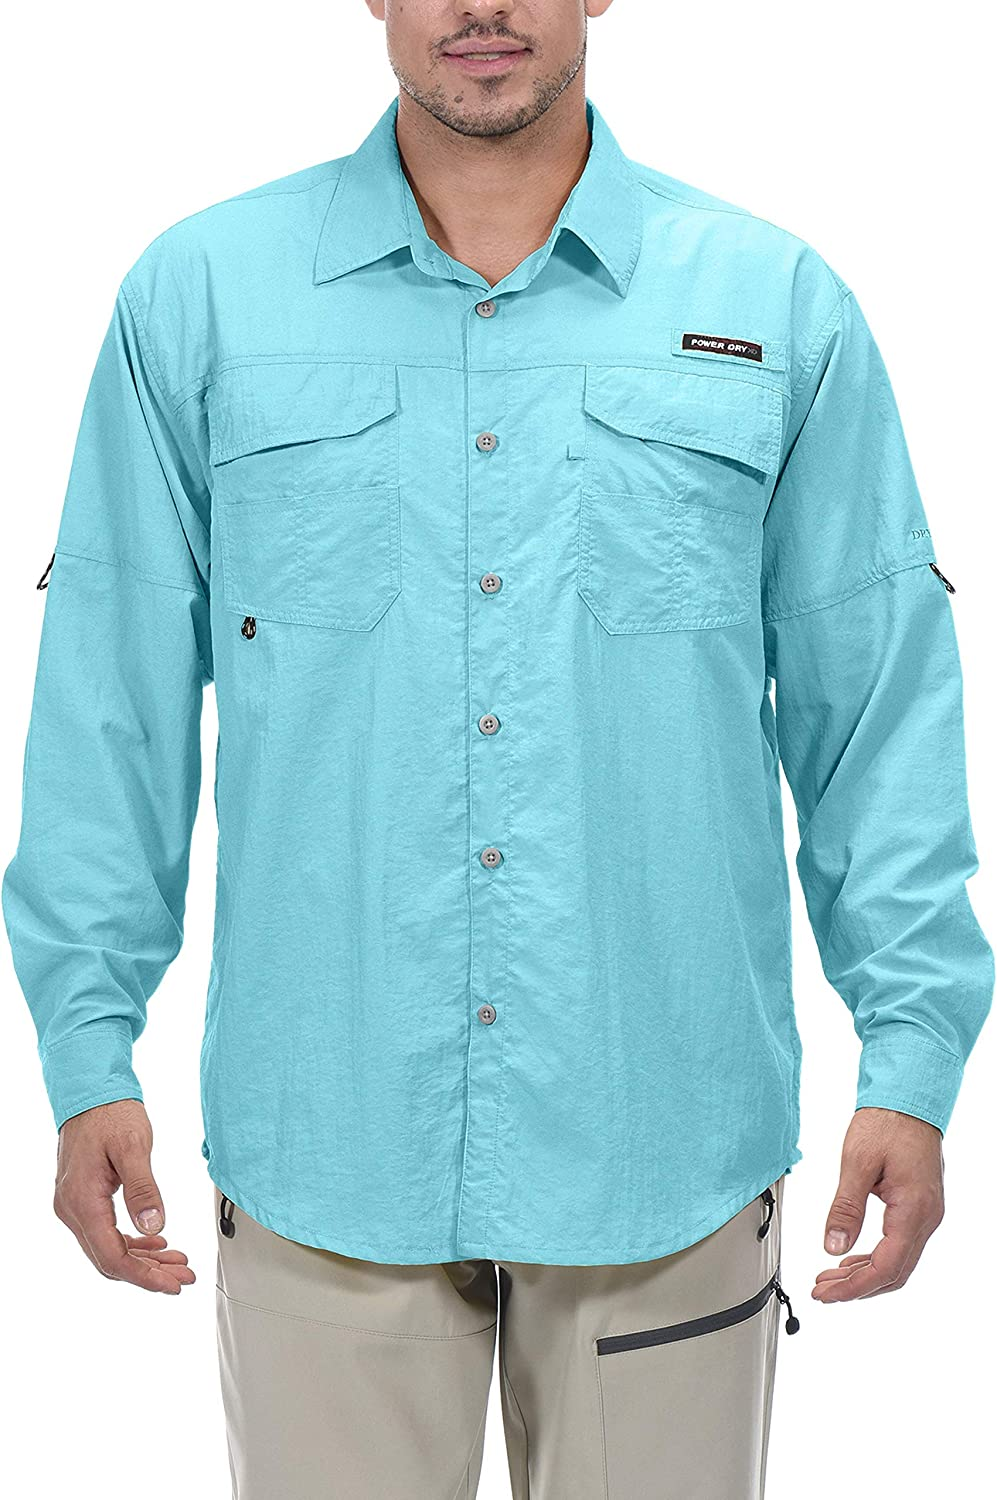 Little Donkey Andy Men's UPF Brand Cheap Sale Sales results No. 1 Venue UV Mosiquito Protection Shirt 50+